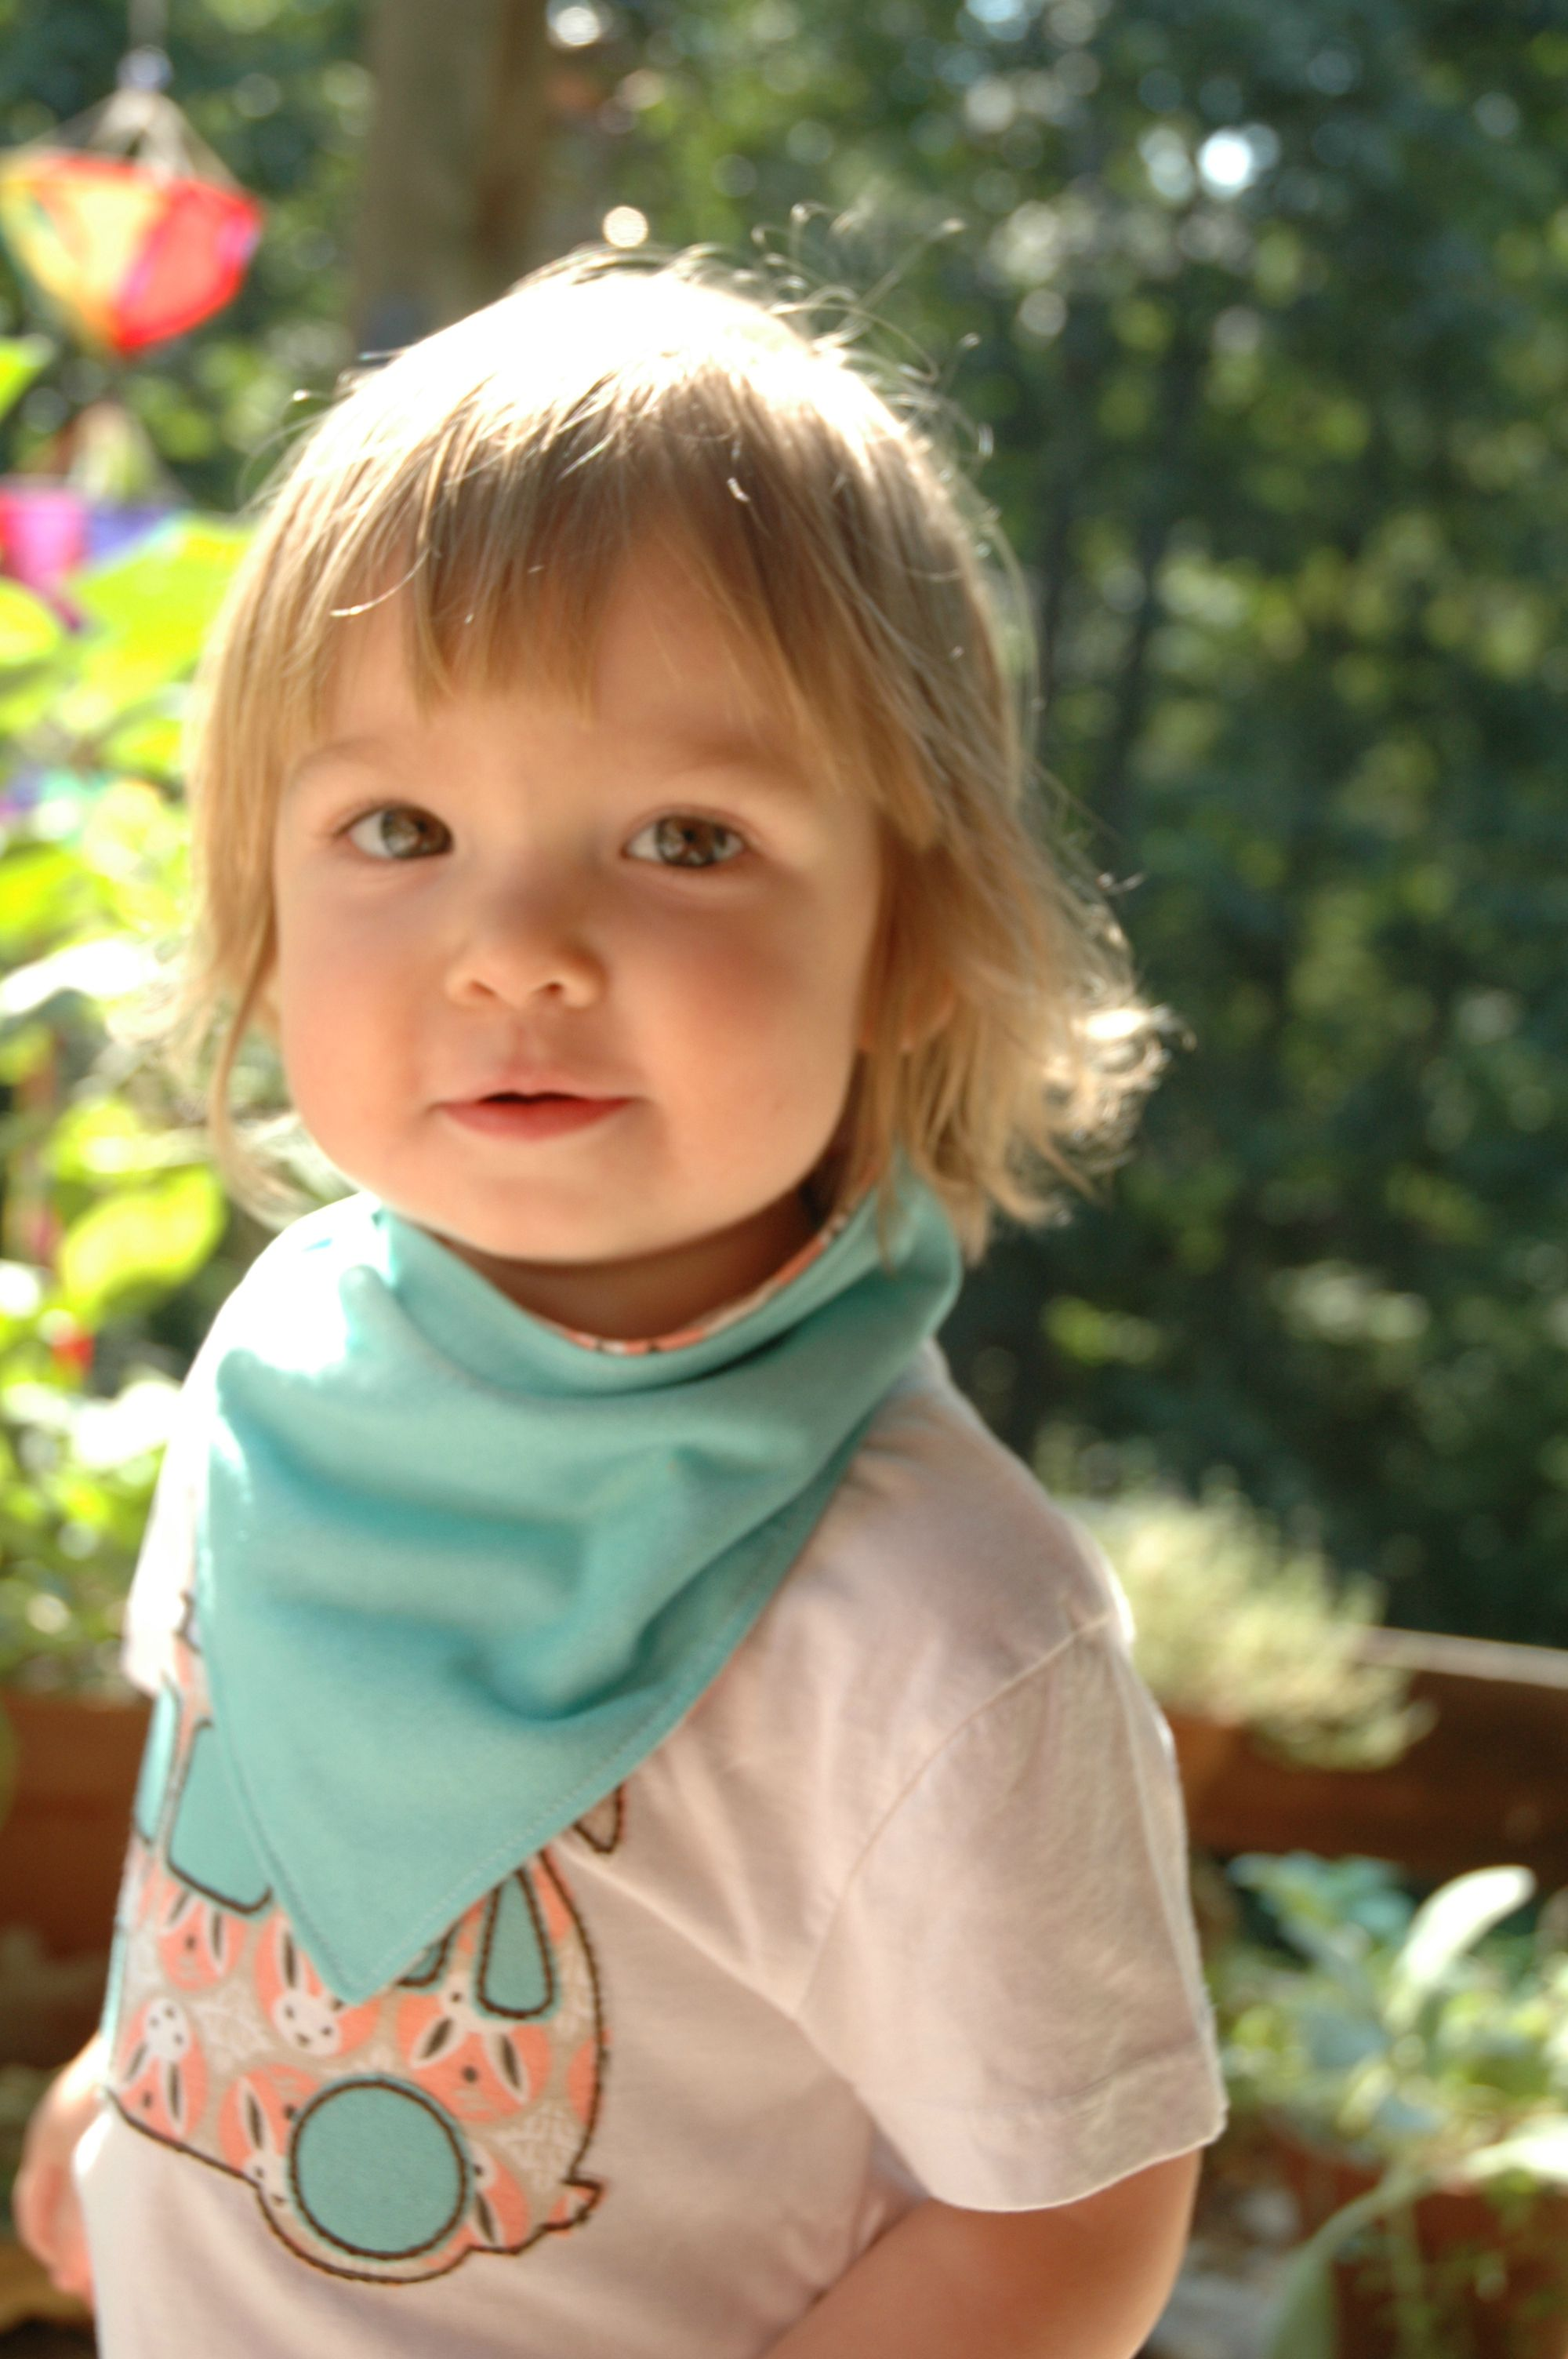 photo makeover time for the shop, and i love these of my little gal wearing the bandana drool bib & matching VW bus tee